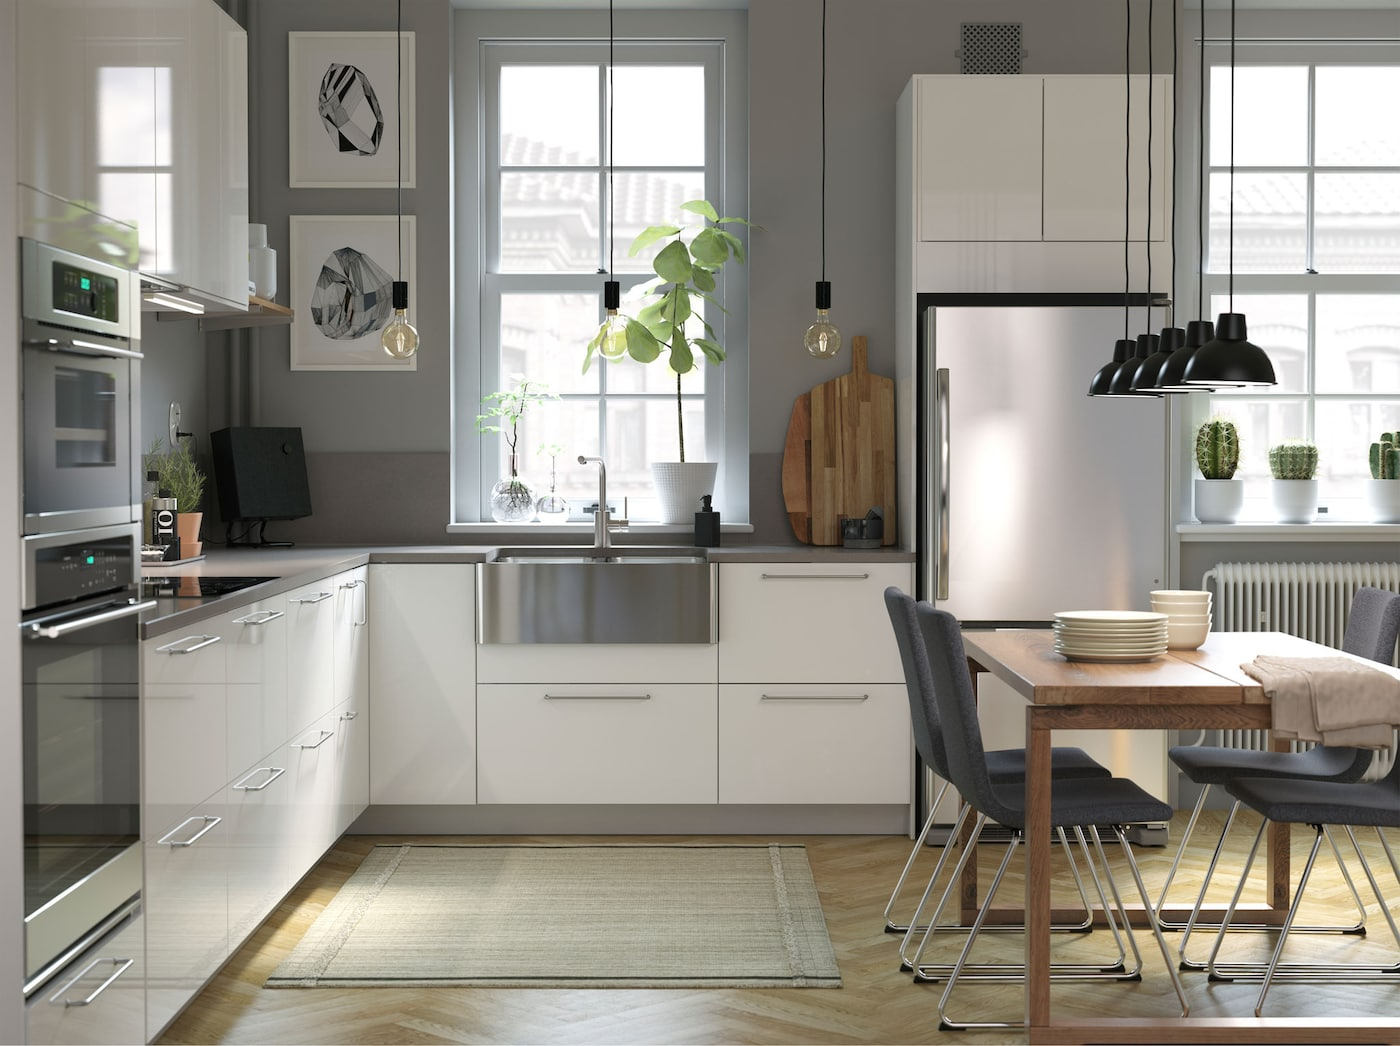 inspiration IKEA inspiration Kitchen inspiration IKEA Kitchen IKEA IKEA Kitchen inspiration inspiration Kitchen Kitchen rdxBoWeEQC